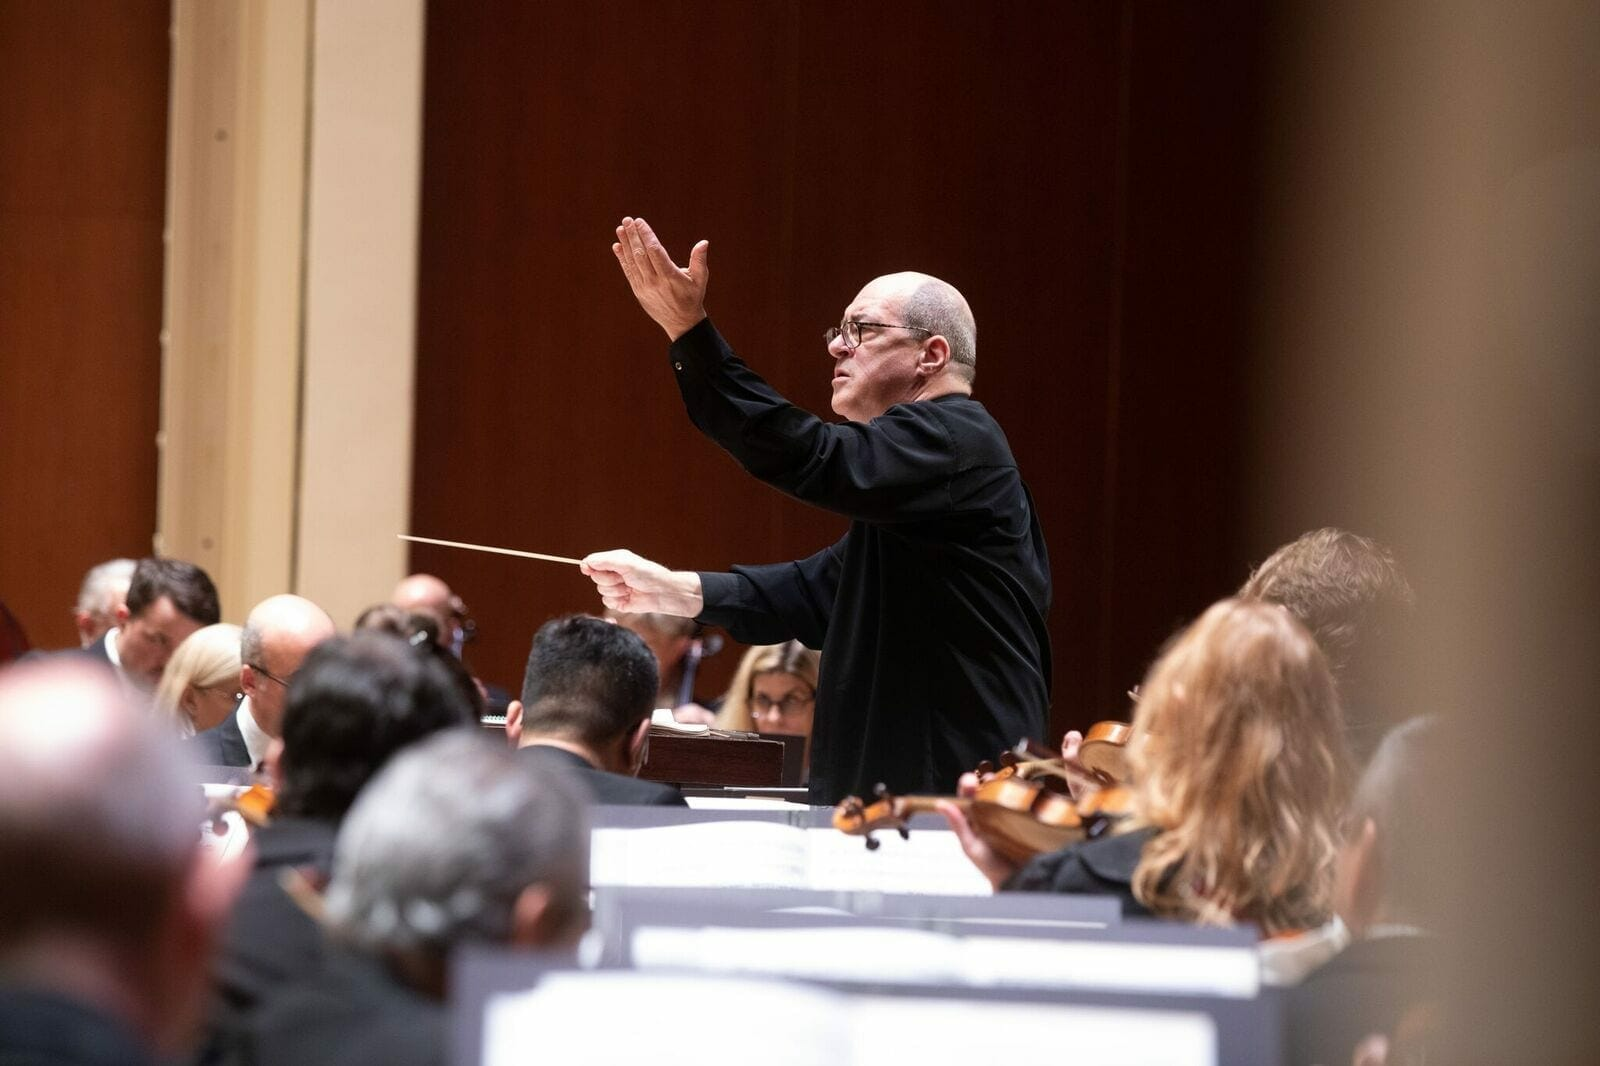 ASO Music Director Robert Spano conducts the orchestra.